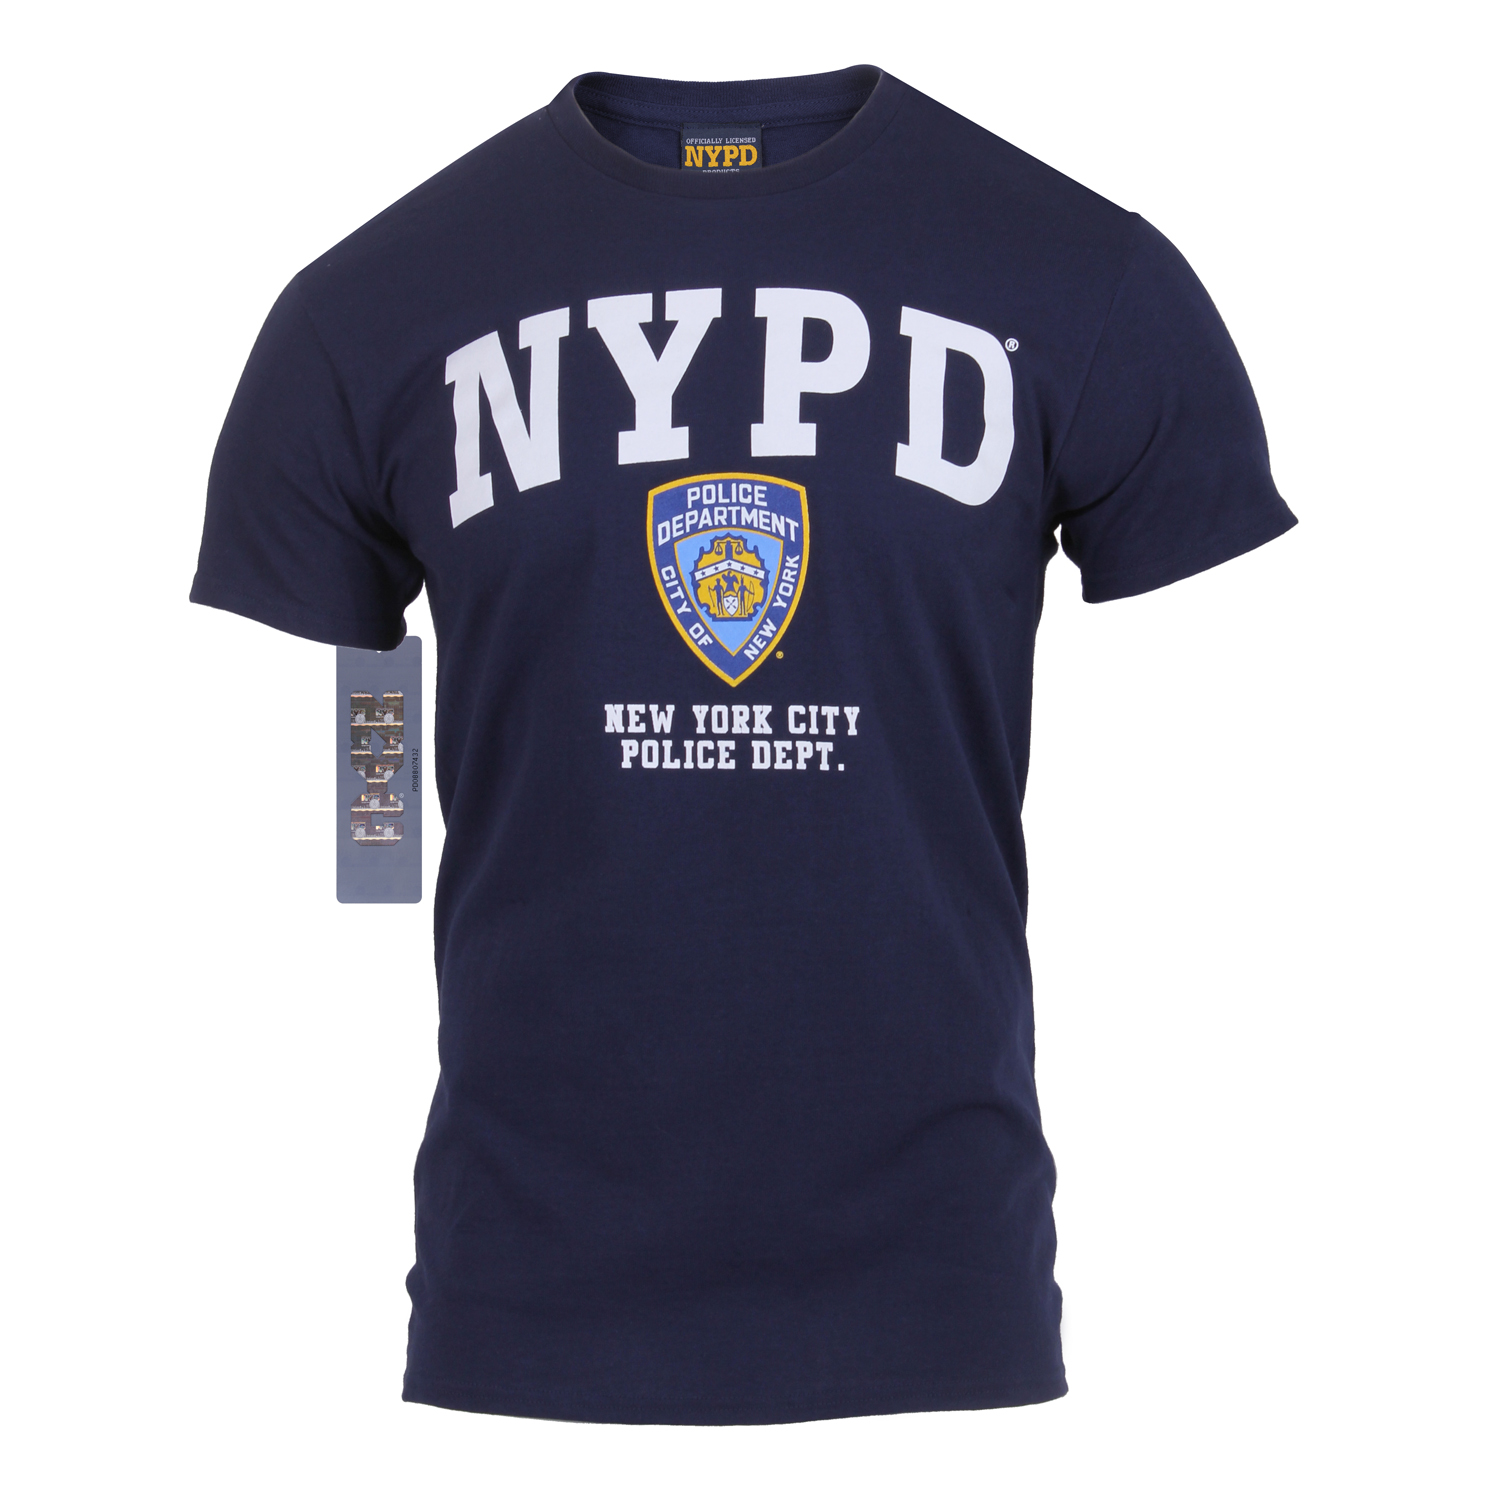 b21e03625 Officially Licensed NYPD T-shirt